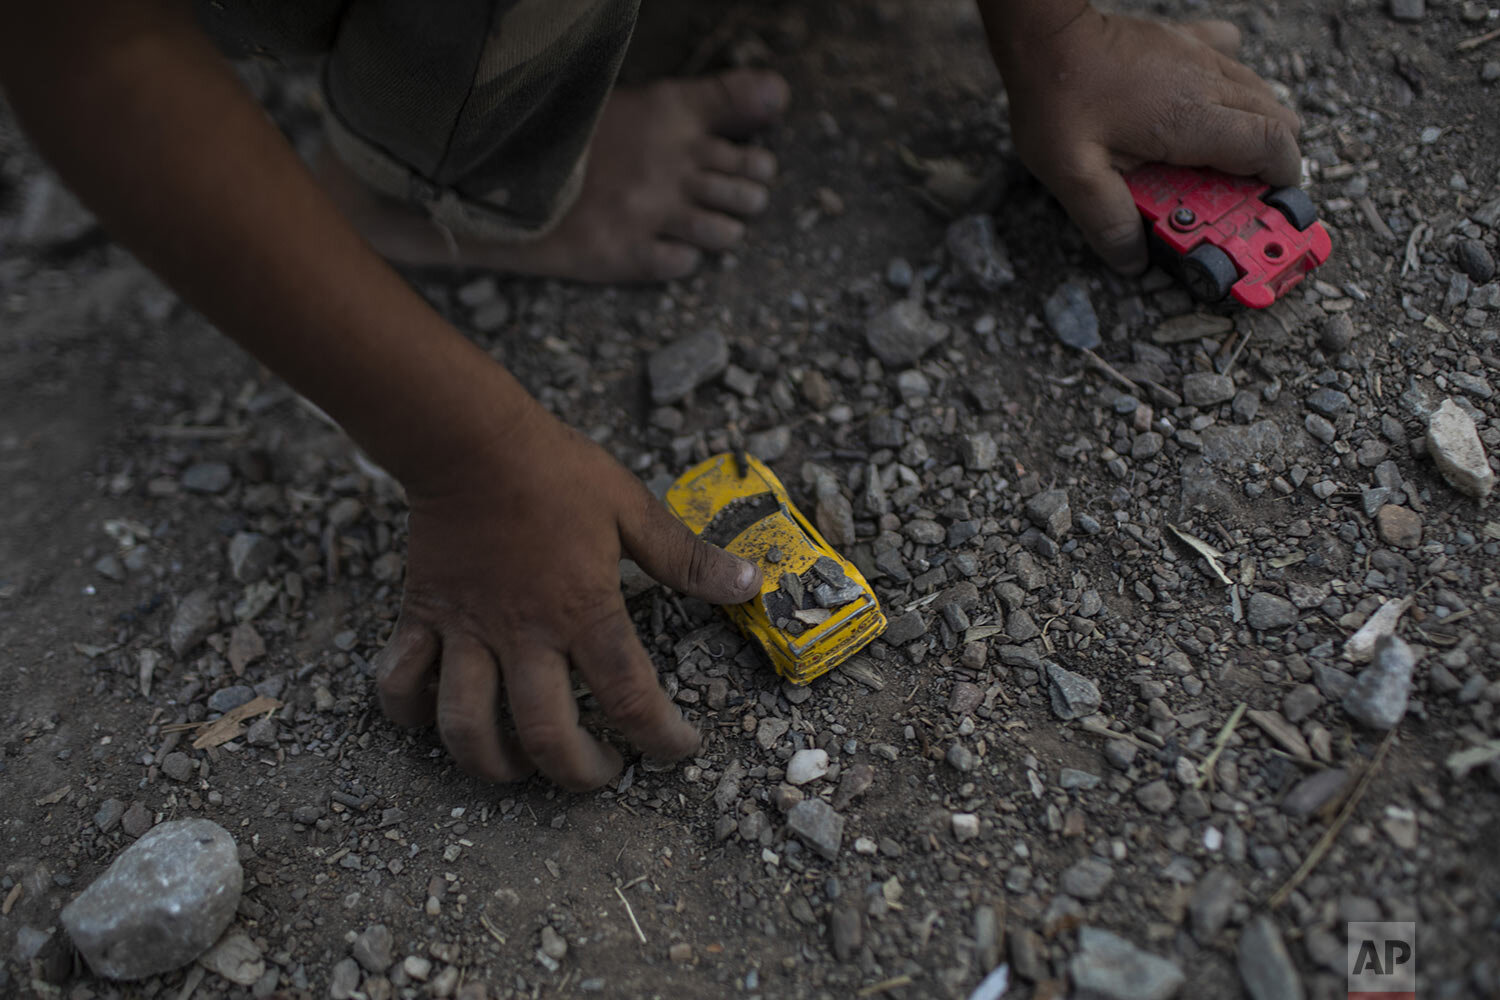 A Syrian boy plays with a toy car at the Moria refugee and migrant camp on the Greek island of Lesbos, Thursday, Oct. 3, 2019. (AP Photo/Petros Giannakouris)